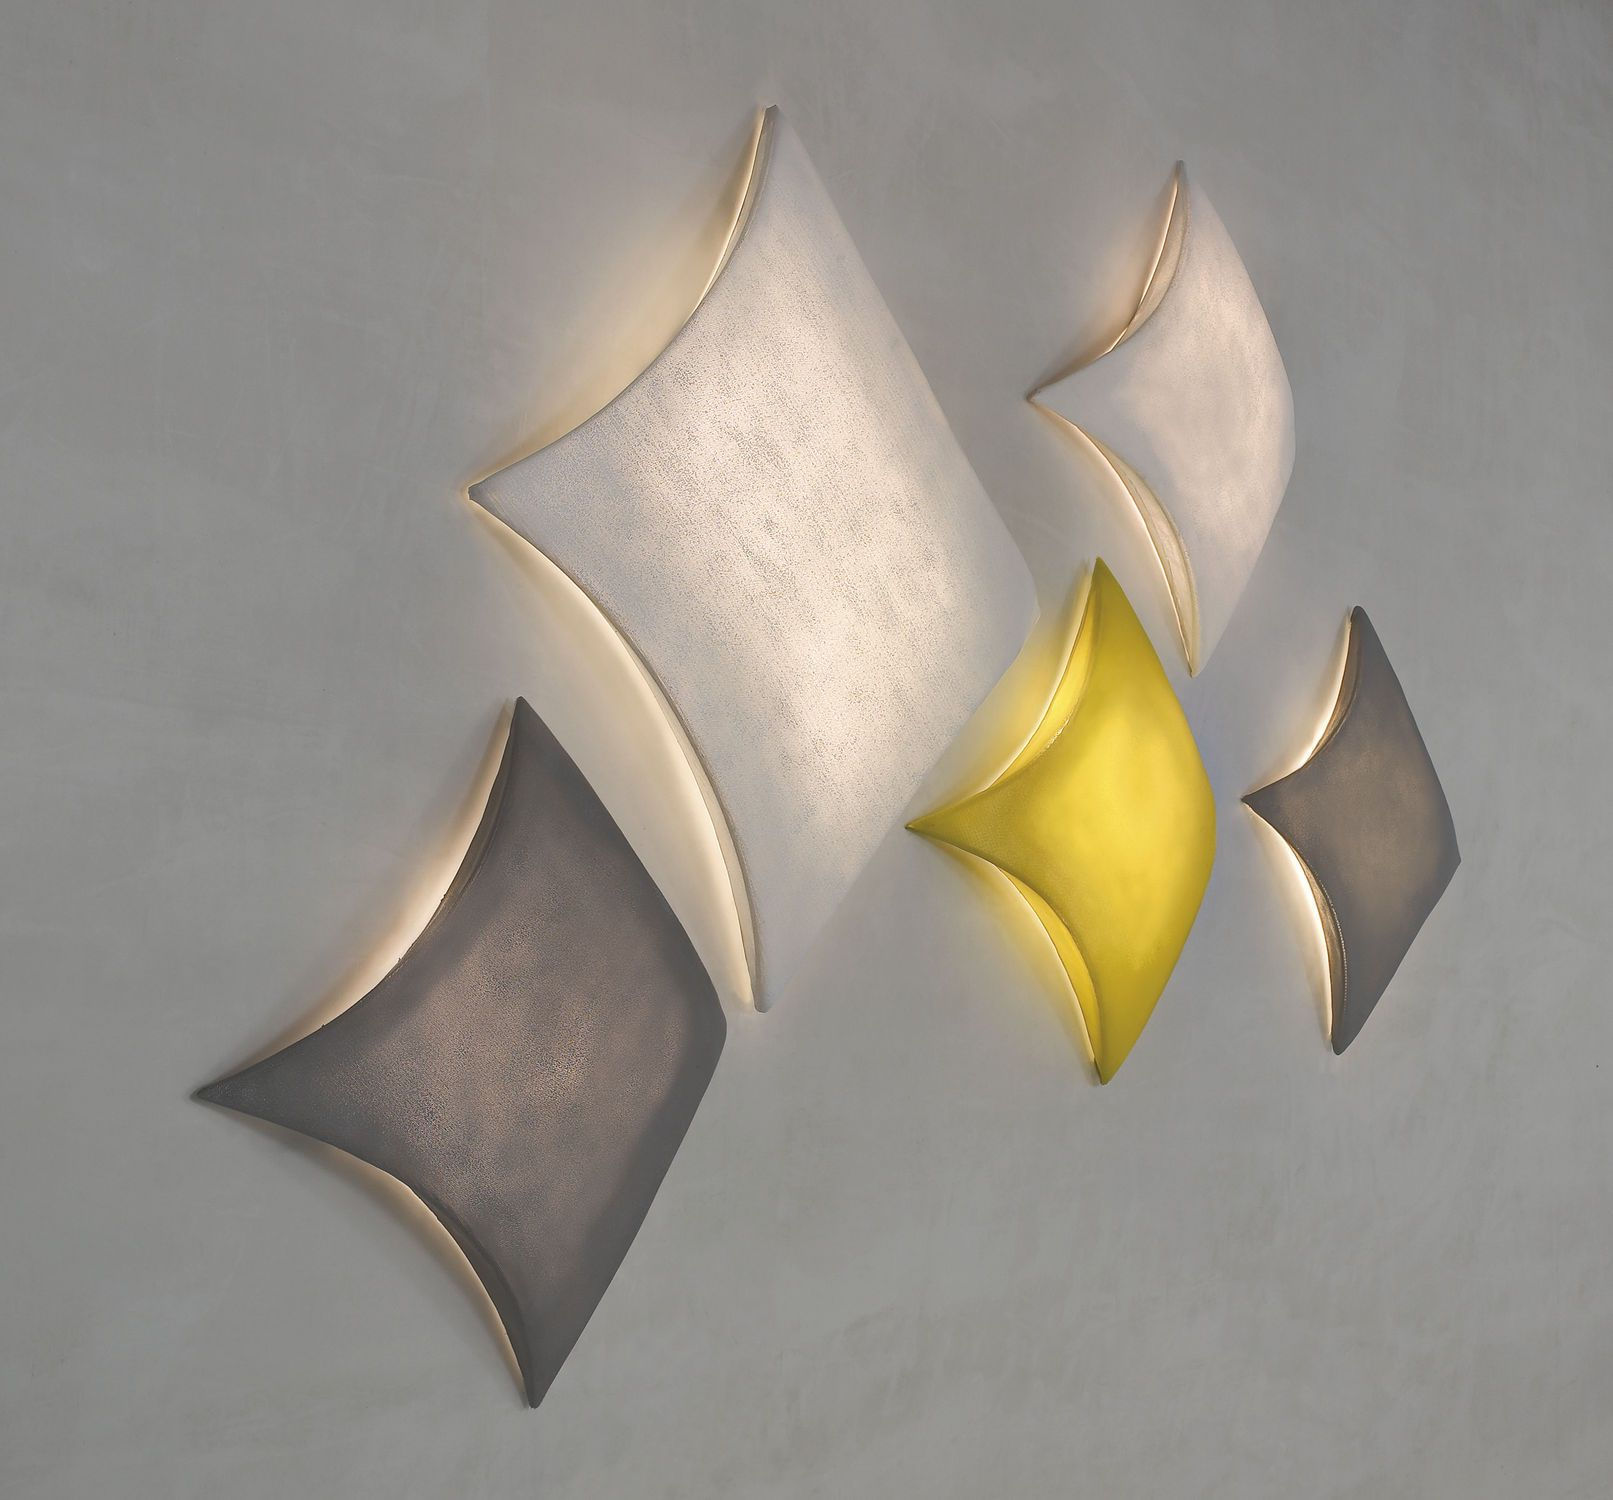 original design wall light kite arturo alvarez - Wall Lamps Design